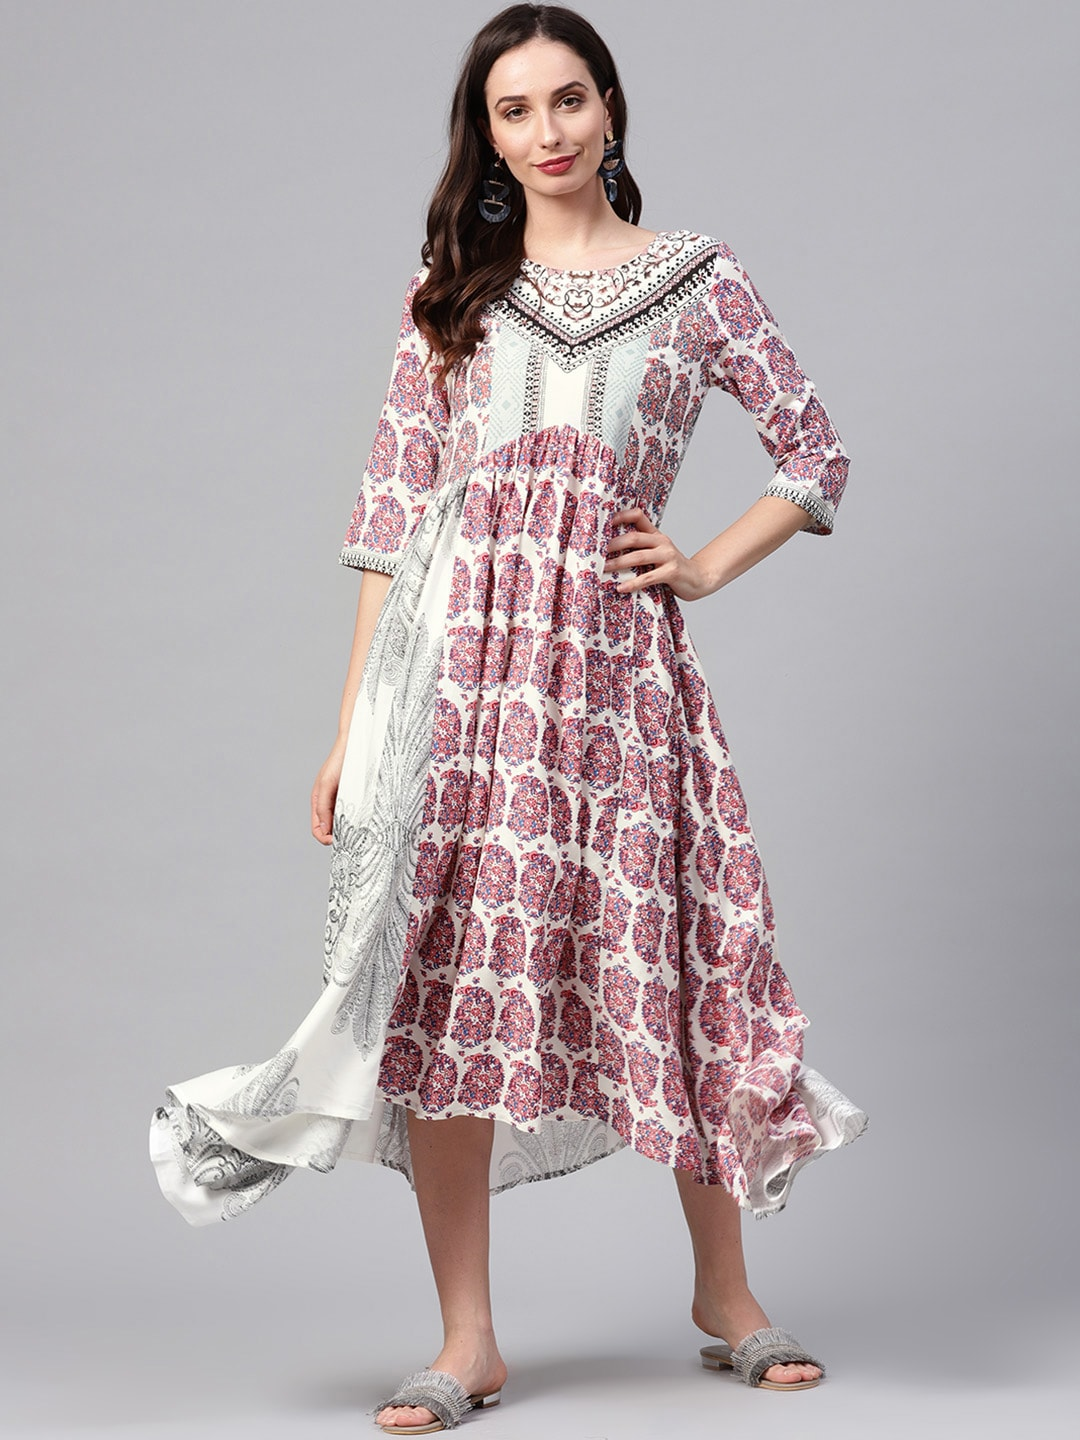 ffc5a08ec Long Dresses - Buy Maxi Dresses for Women Online in India - Upto 70% OFF